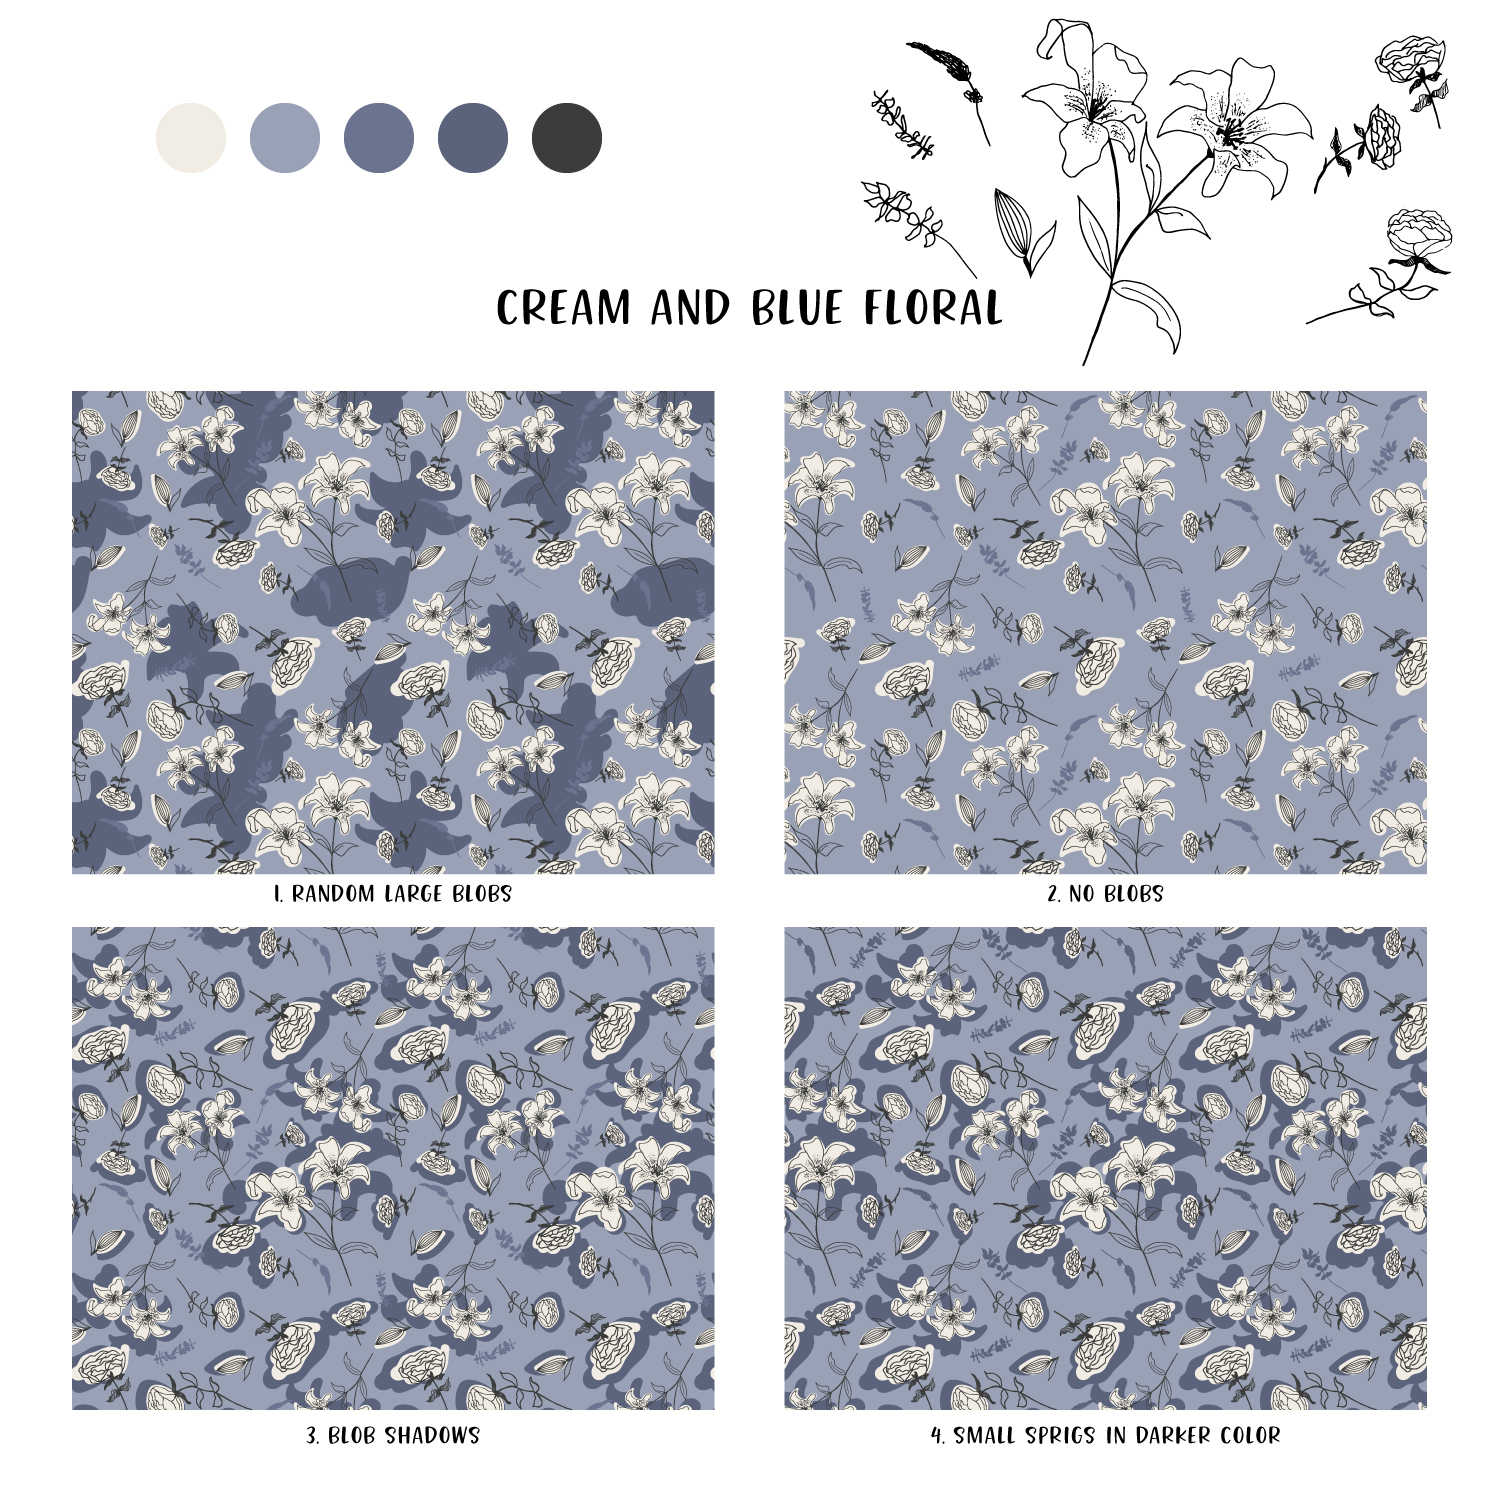 Blue-and-Cream-floral-pattern.jpg